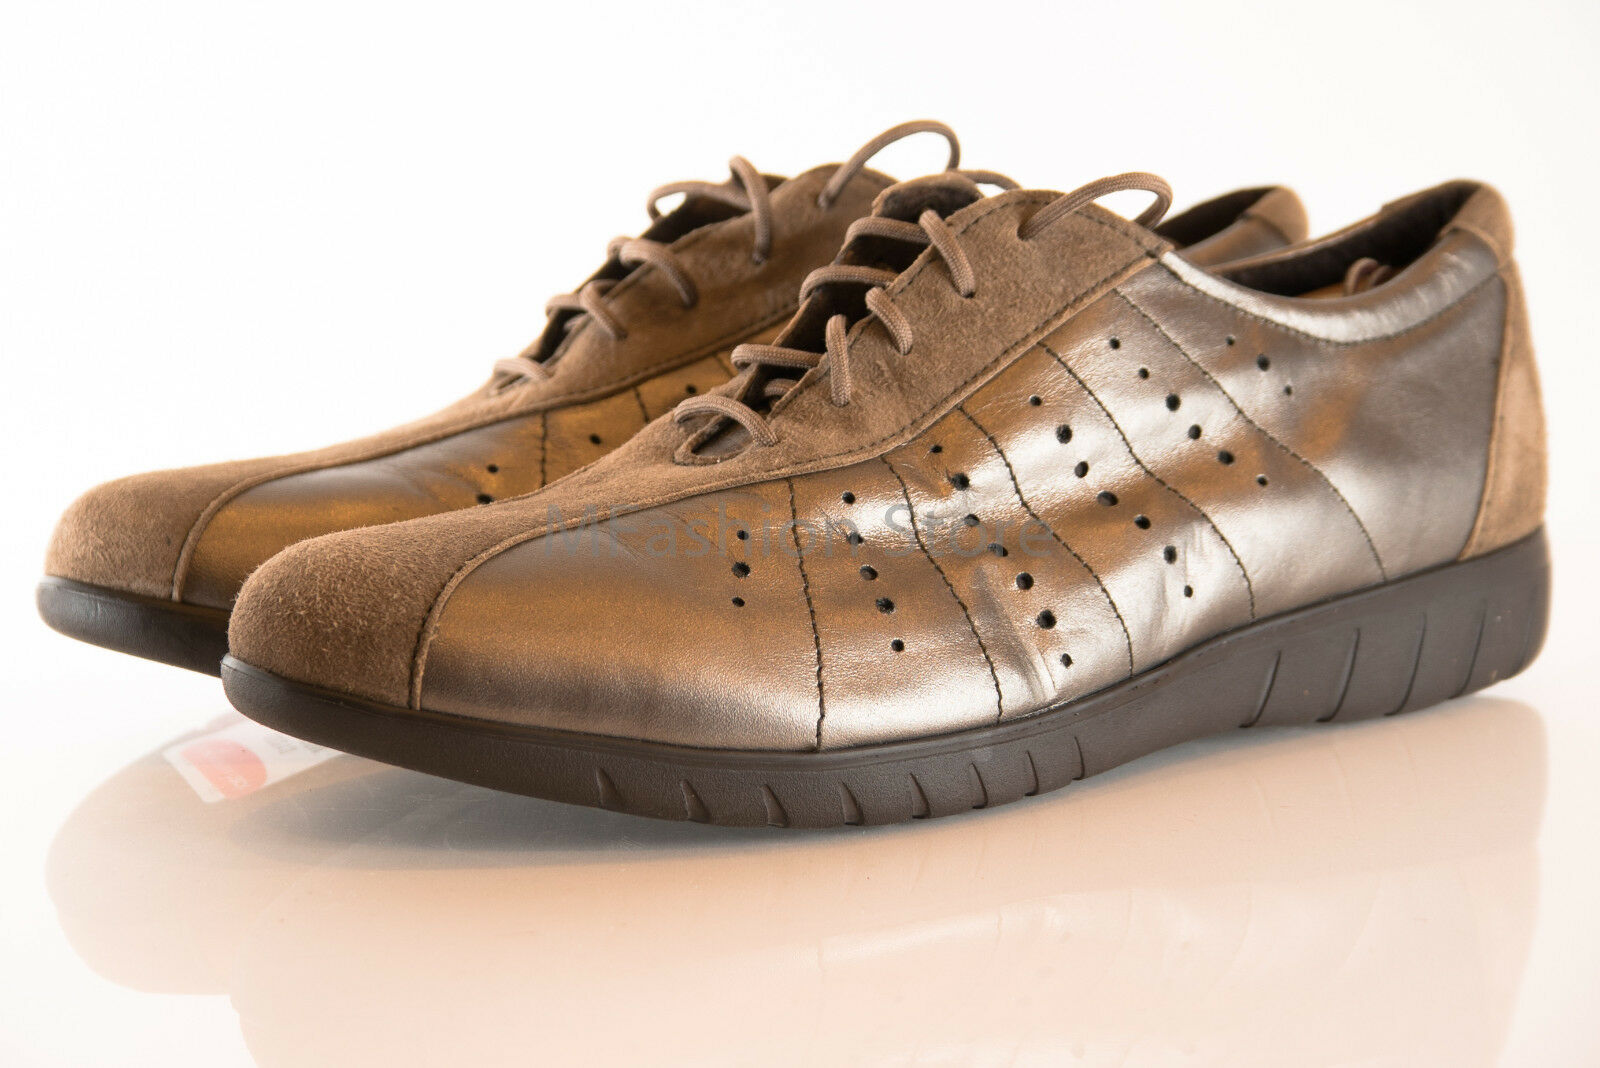 MUNRO Gold/Brown Leather Sport Mens Shoes Size US 12M Extra Light New